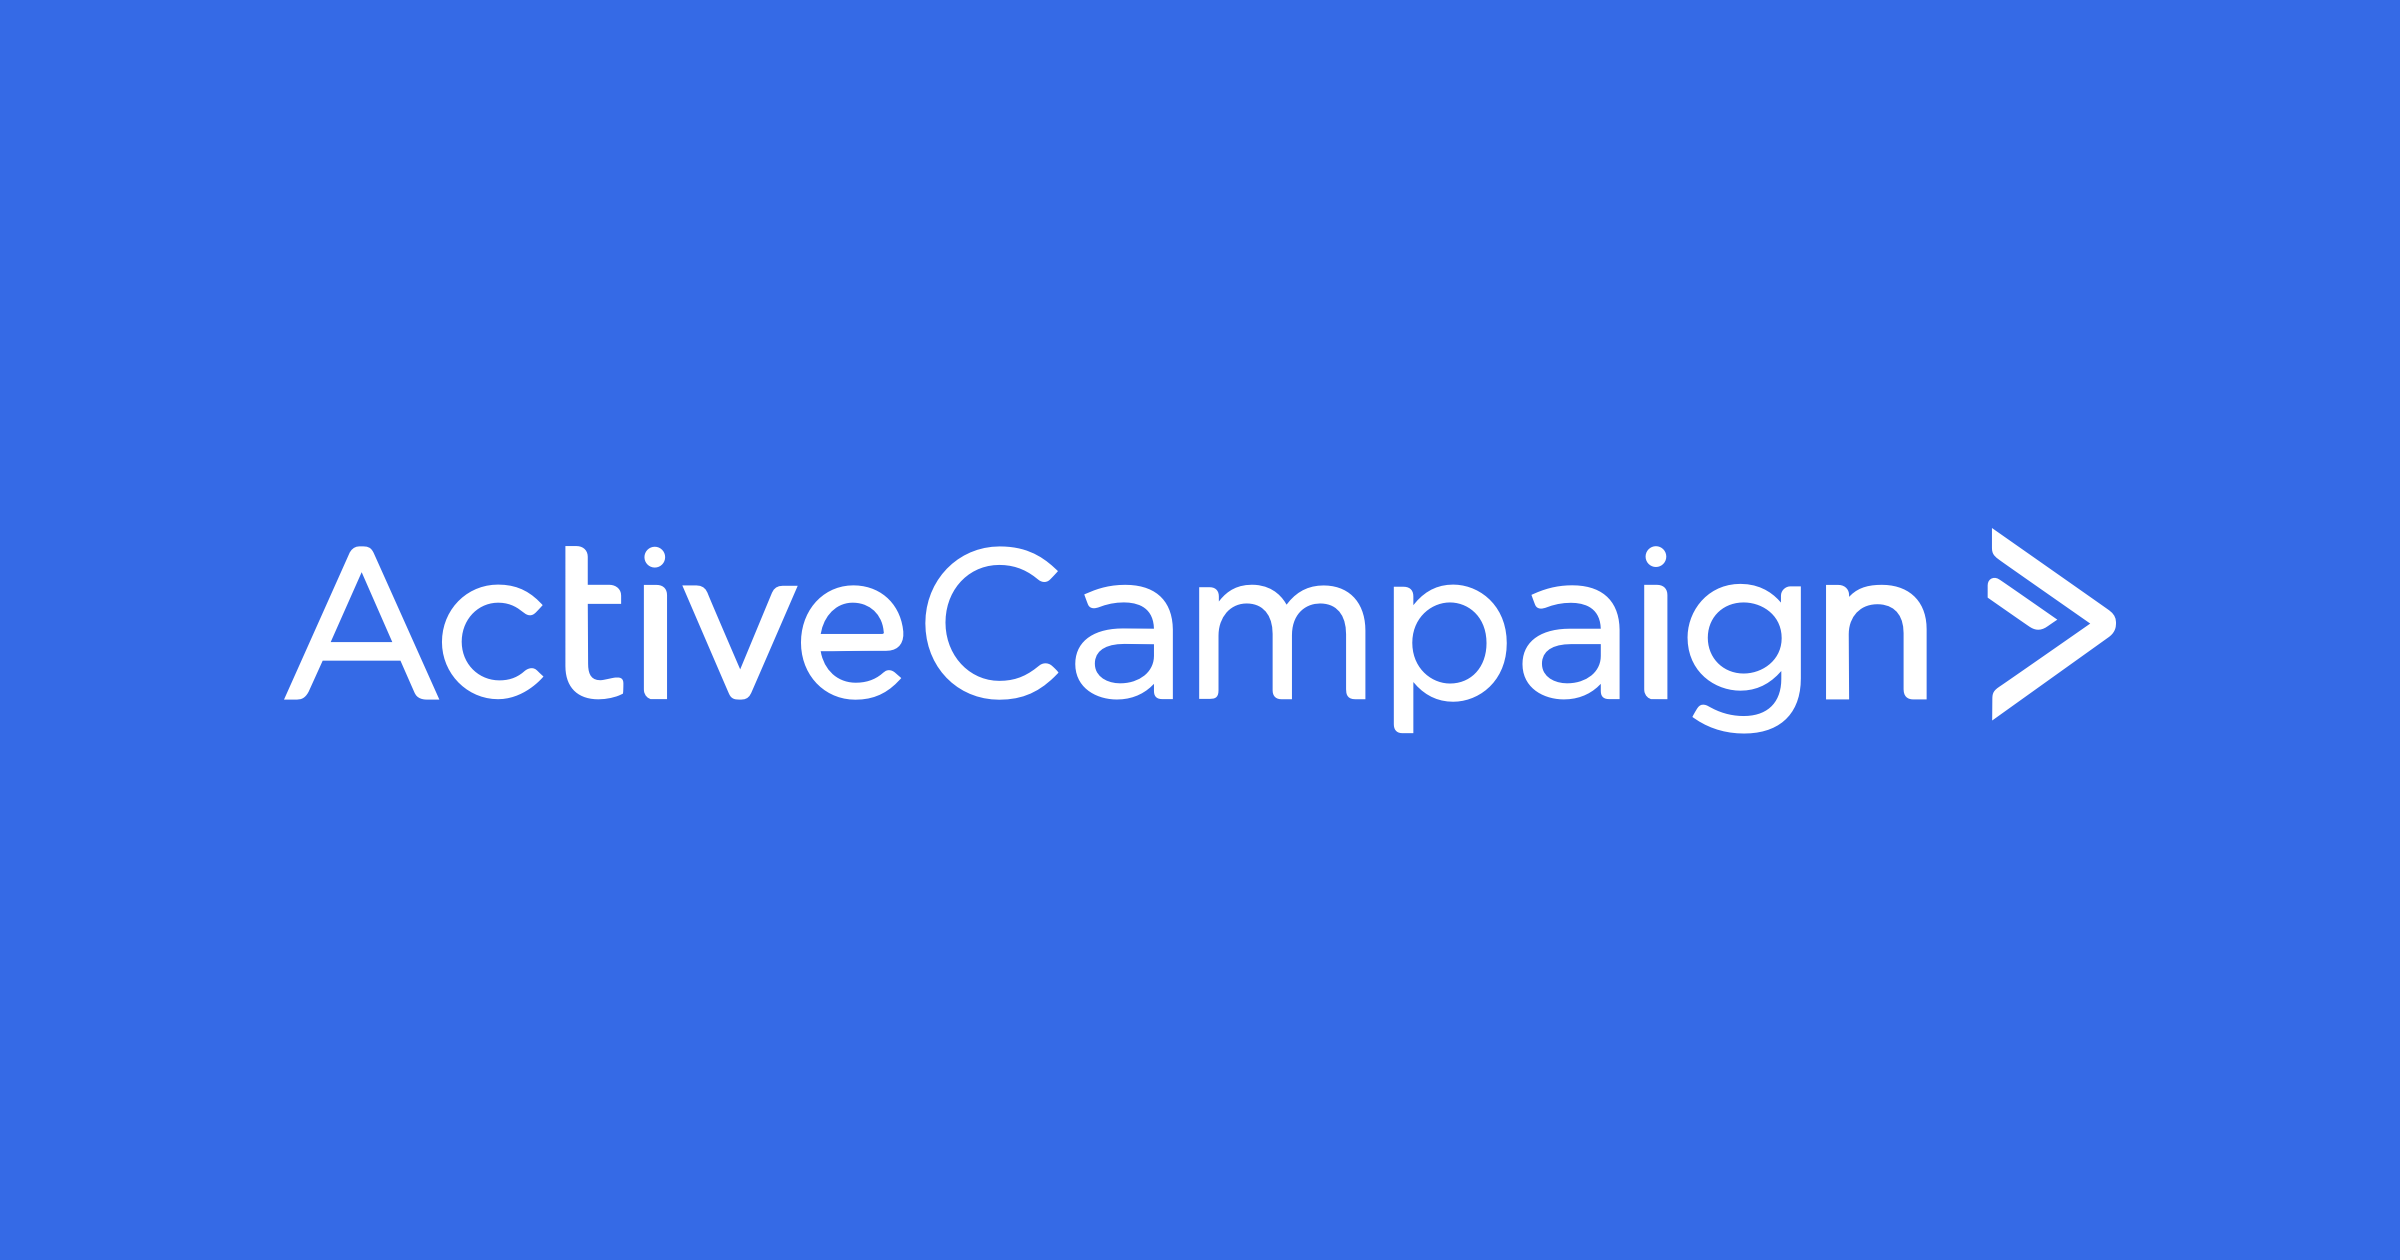 Activecampaign tool